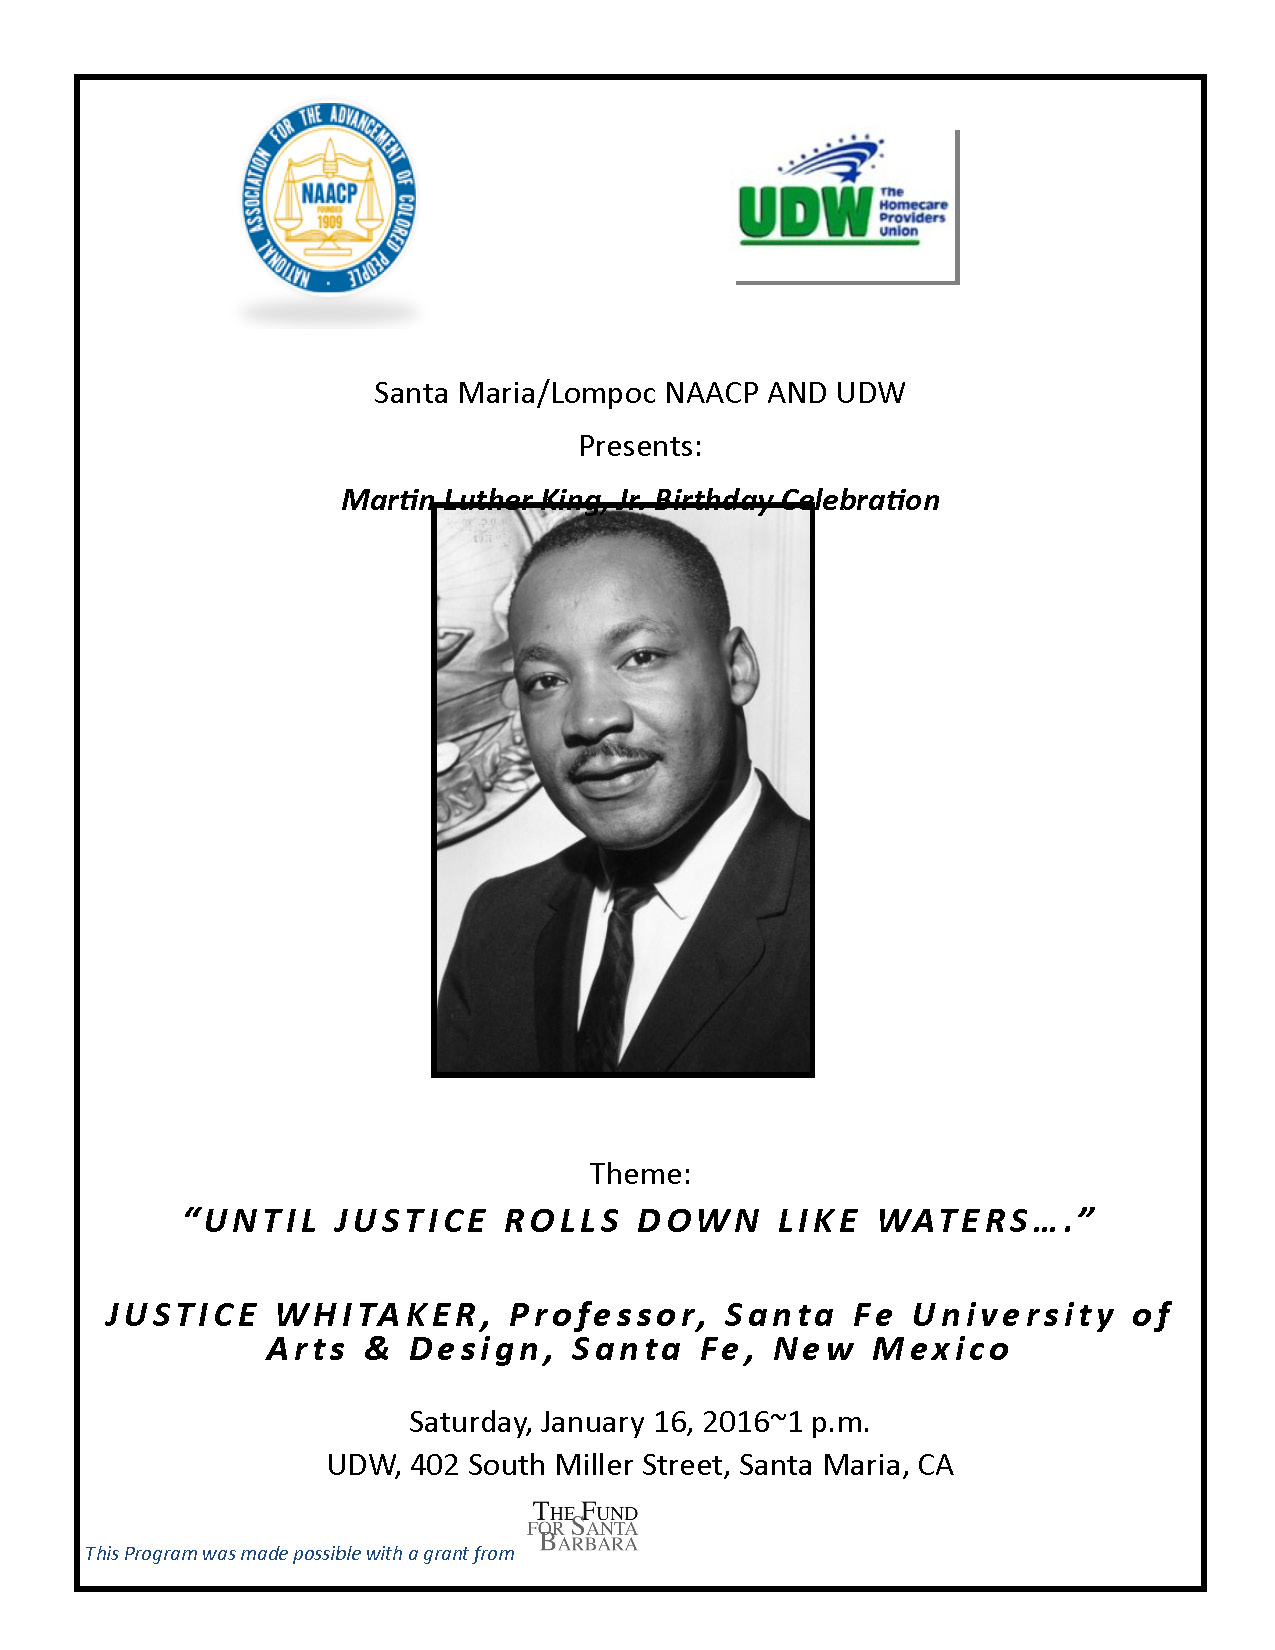 NAACP-UDW_Martin_Luther_King_Jr__Birthday_Celebration_Flyer_2016_resaved.jpg